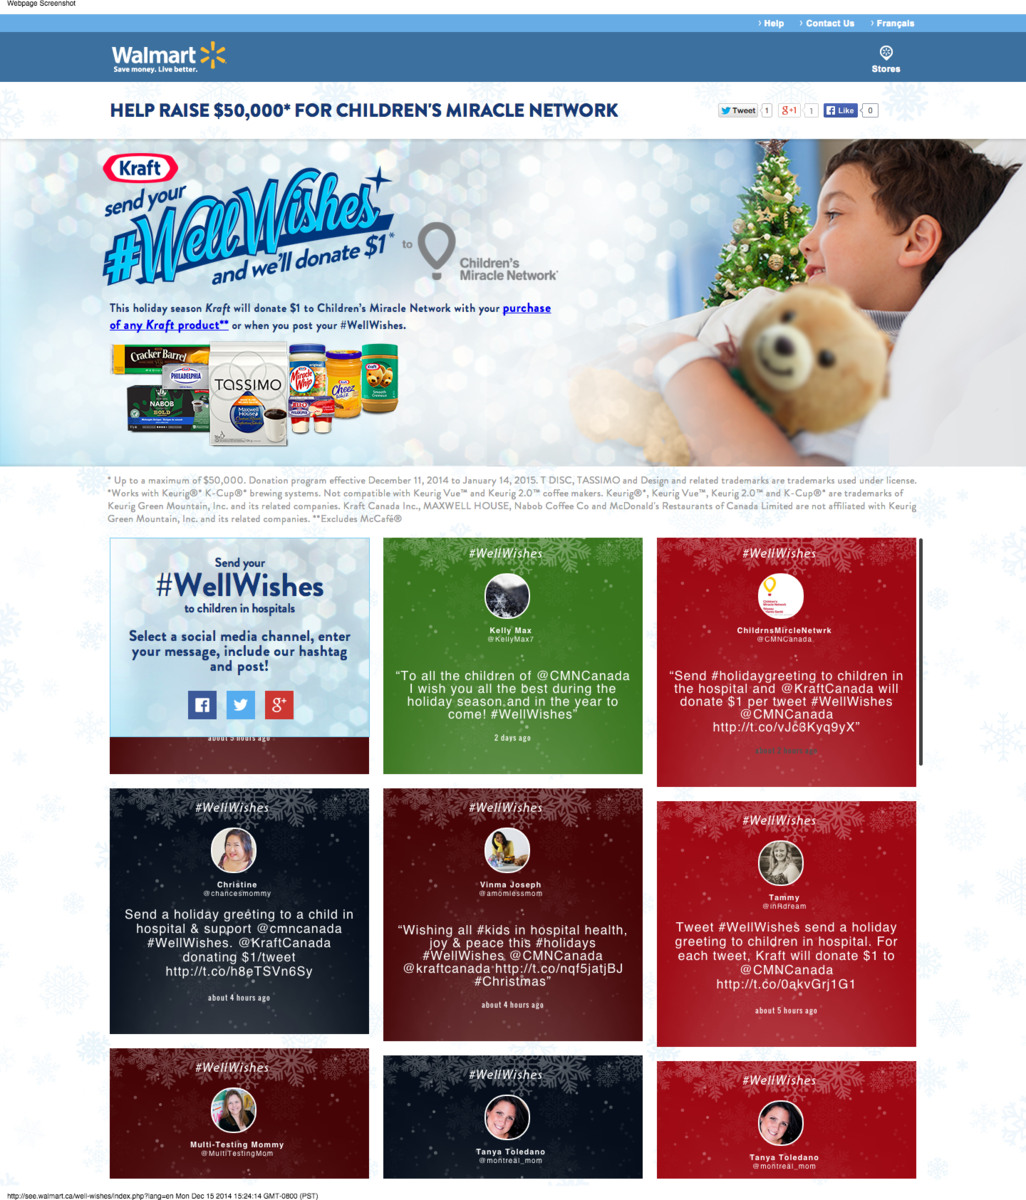 Holiday social media marketing campaigns